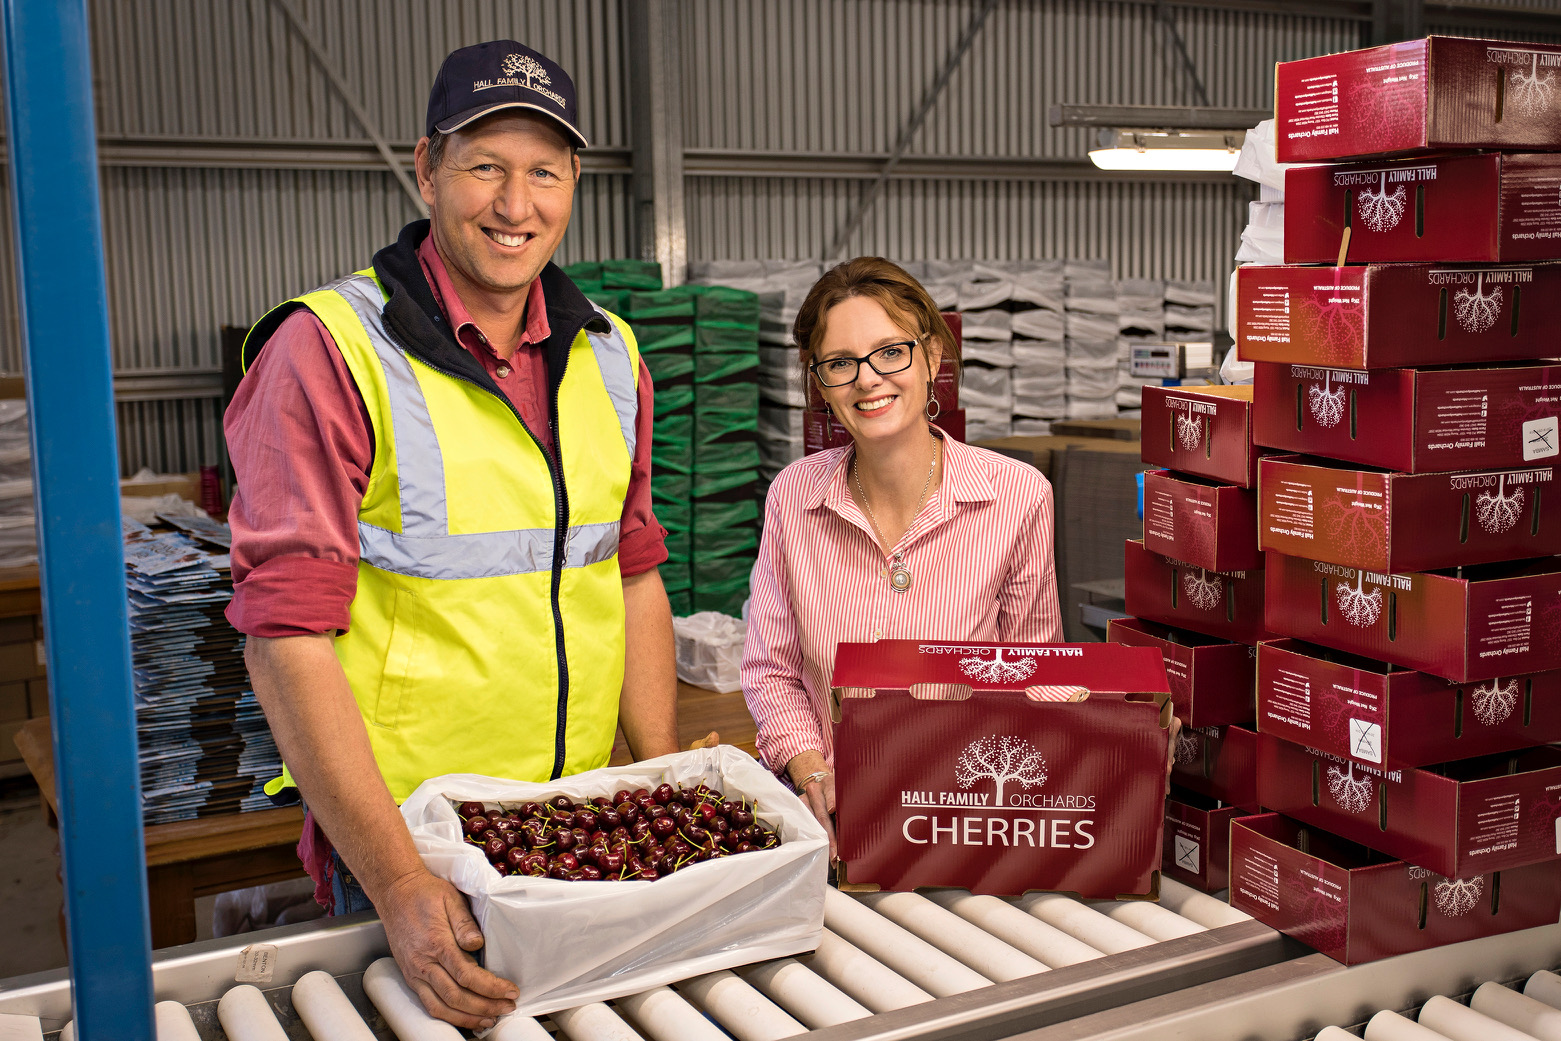 Steph Cooke and a cherry farmer stand in front of a conveyor belt and are surrounded by cherry boxes.